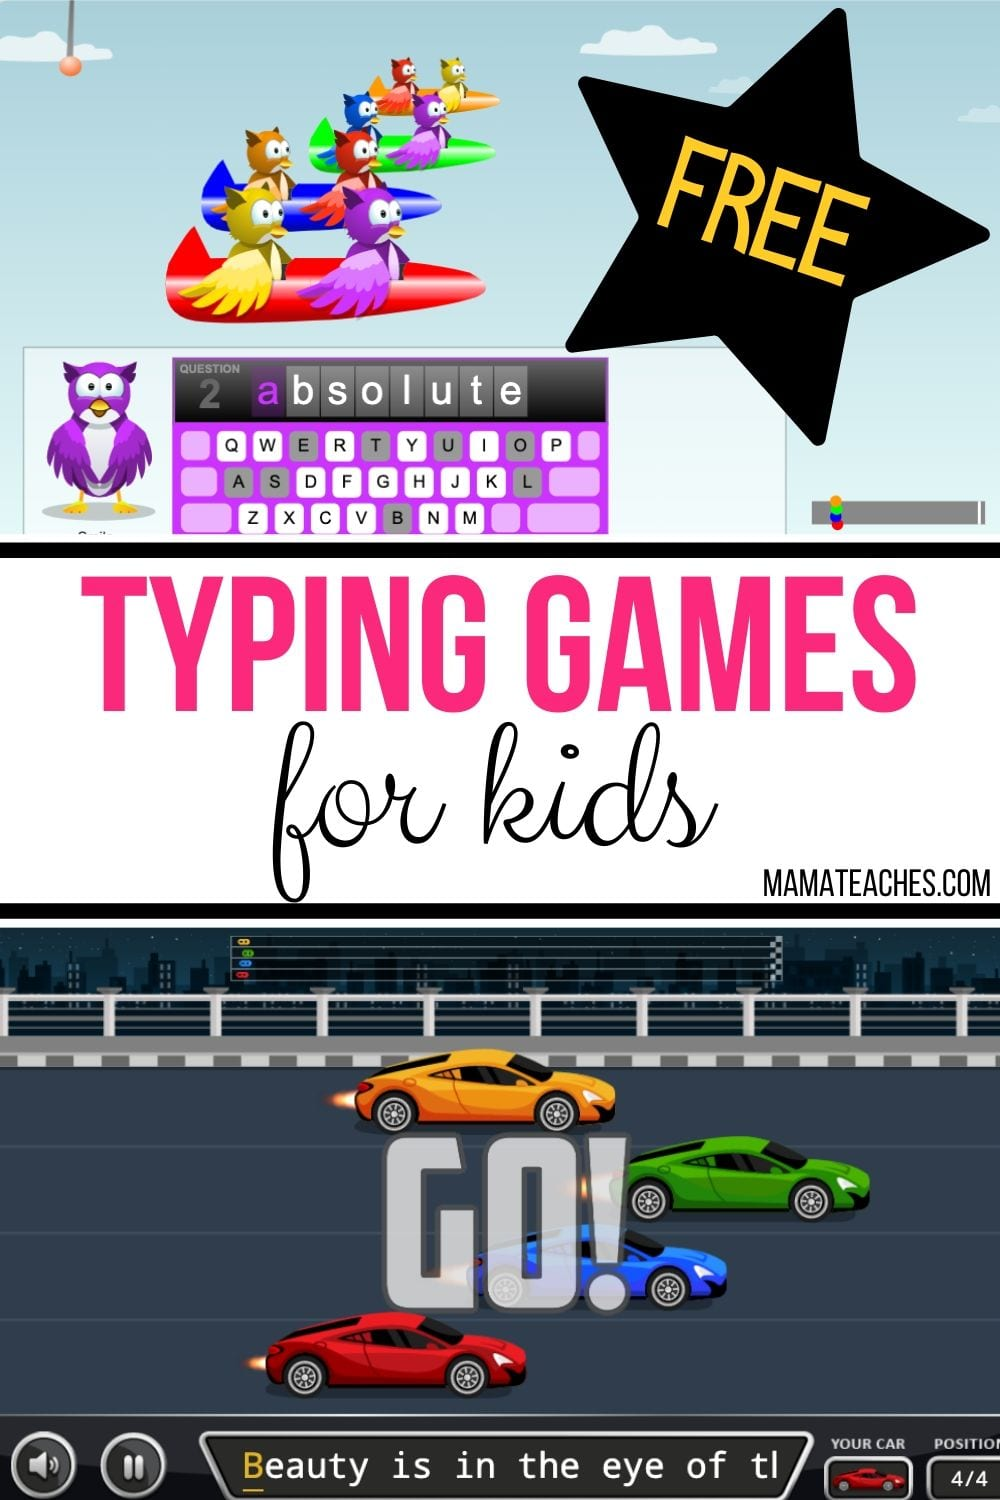 Typing Games for Kids - Free Typing Games and Lessons for Kids and Adults